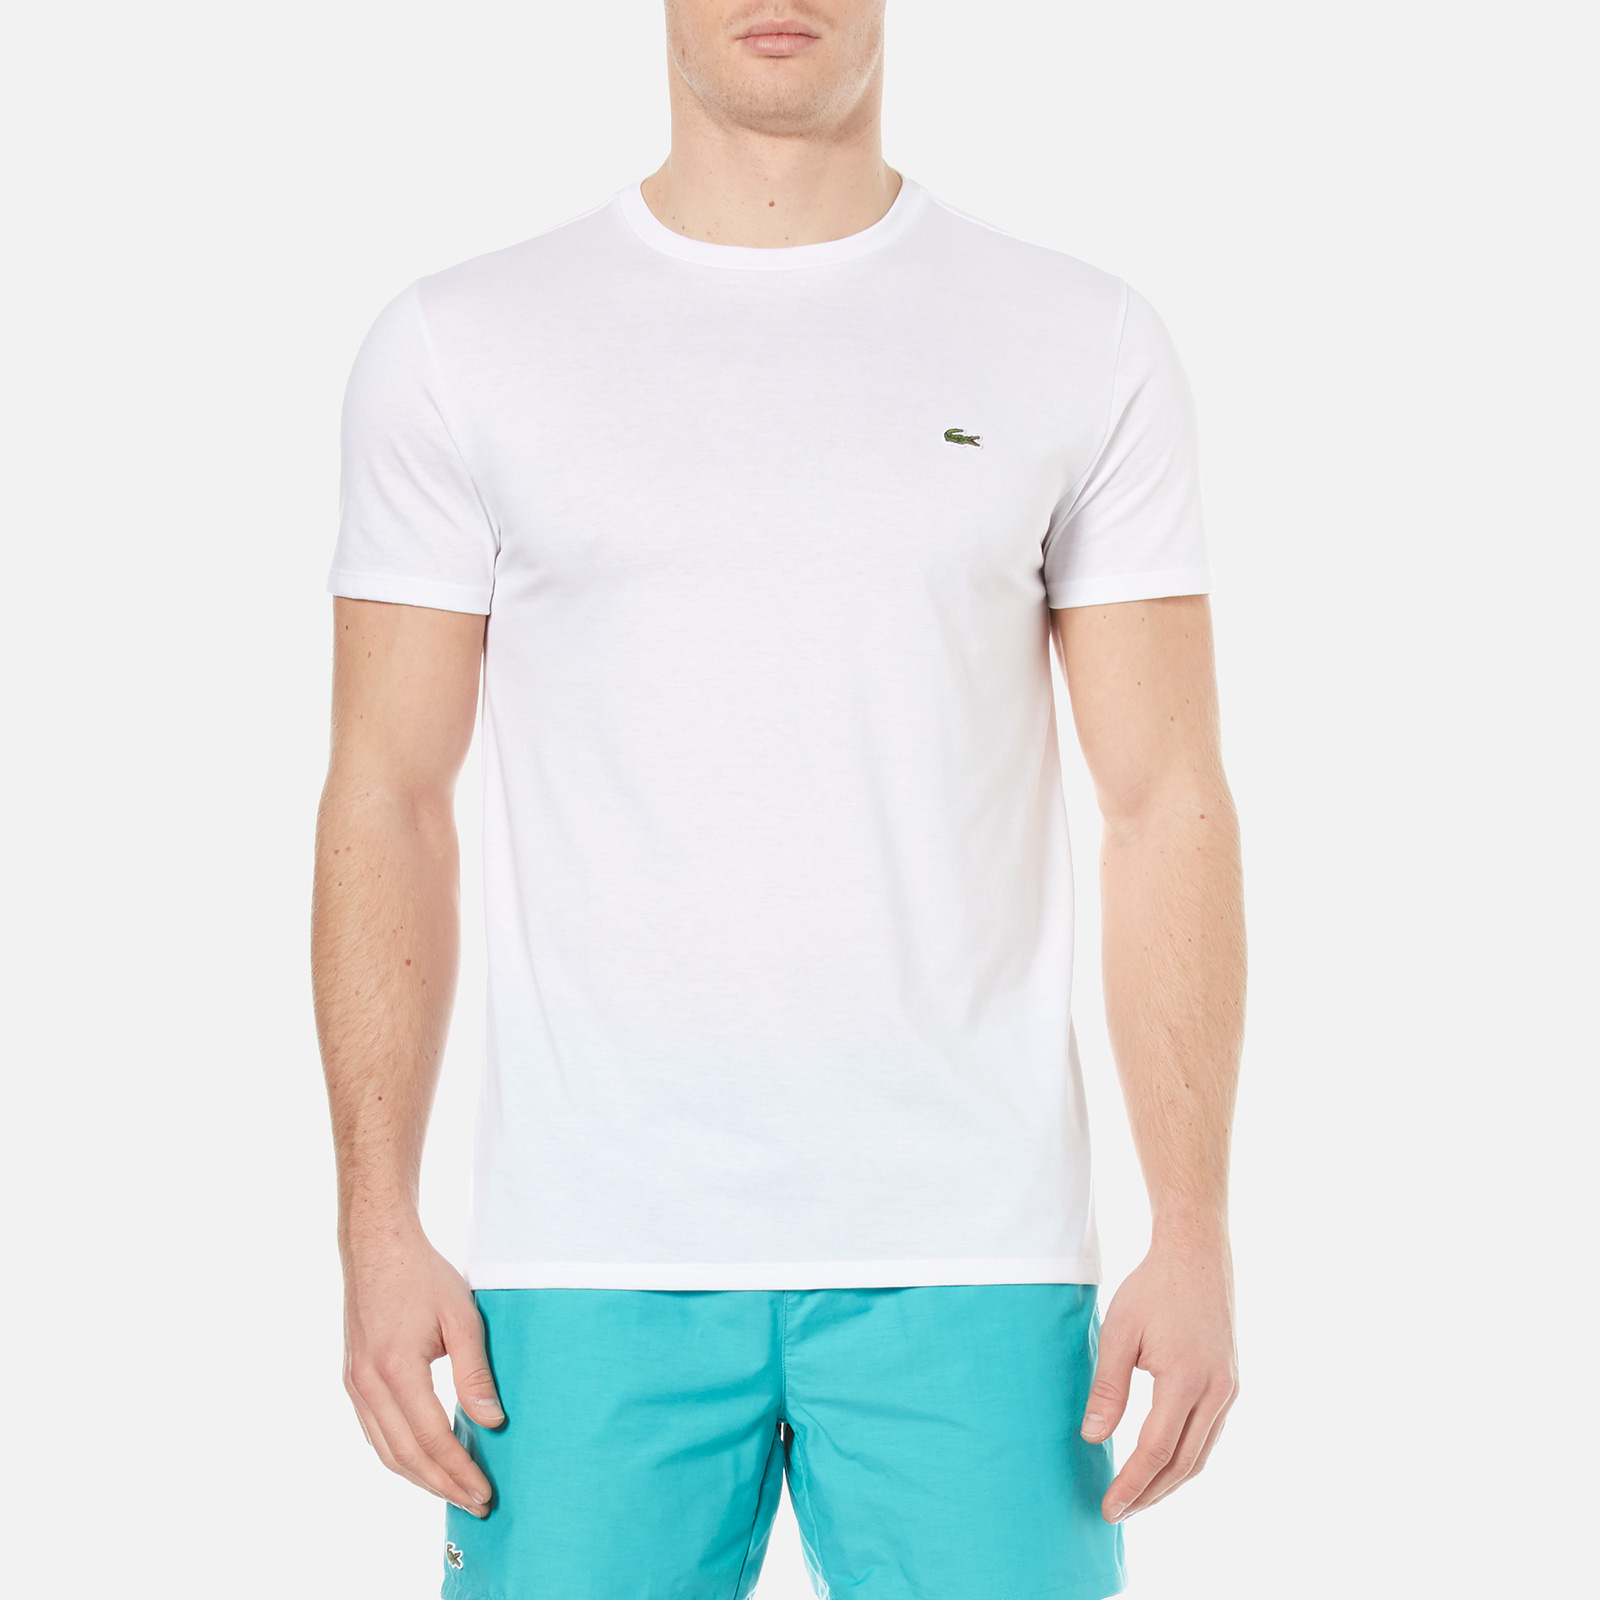 c9650f807934 Lacoste Men s Classic Pima T-Shirt - White - Free UK Delivery over £50